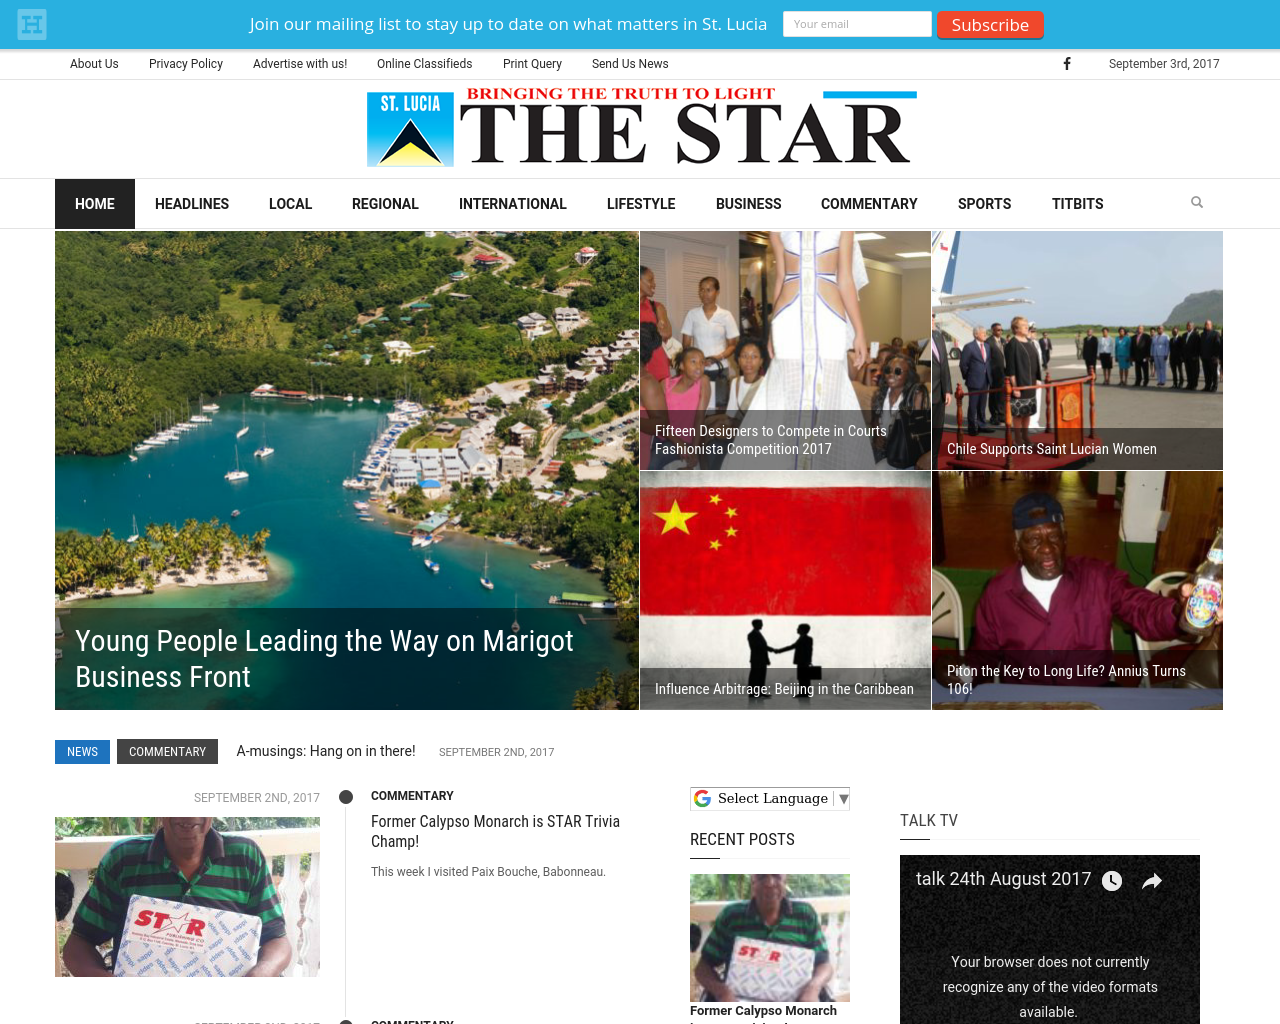 St.-Lucia-STAR-Advertising-Reviews-Pricing